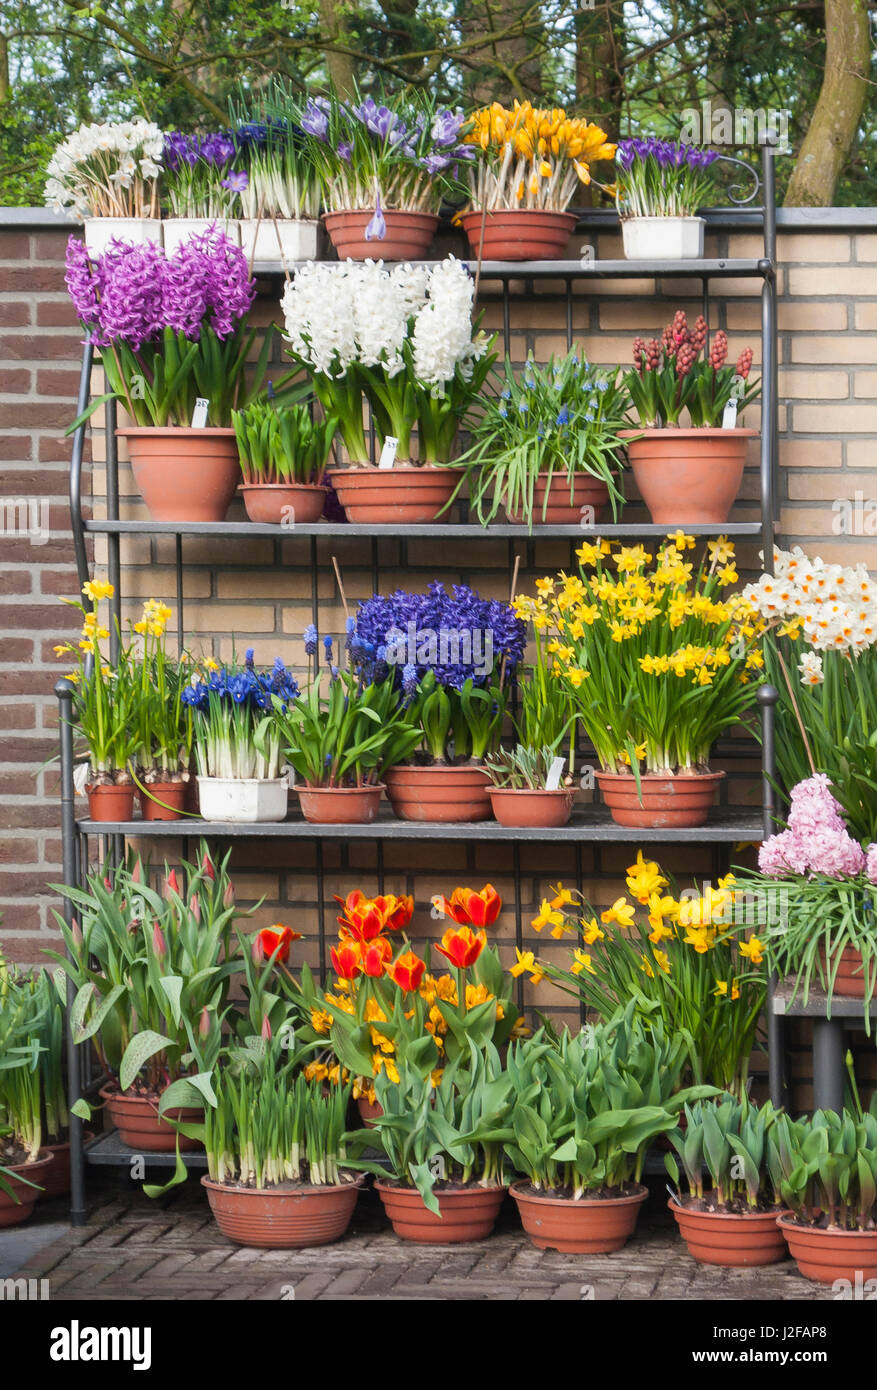 Potted Spring Flowers On Garden Bench Stock Photo 139250000 Alamy